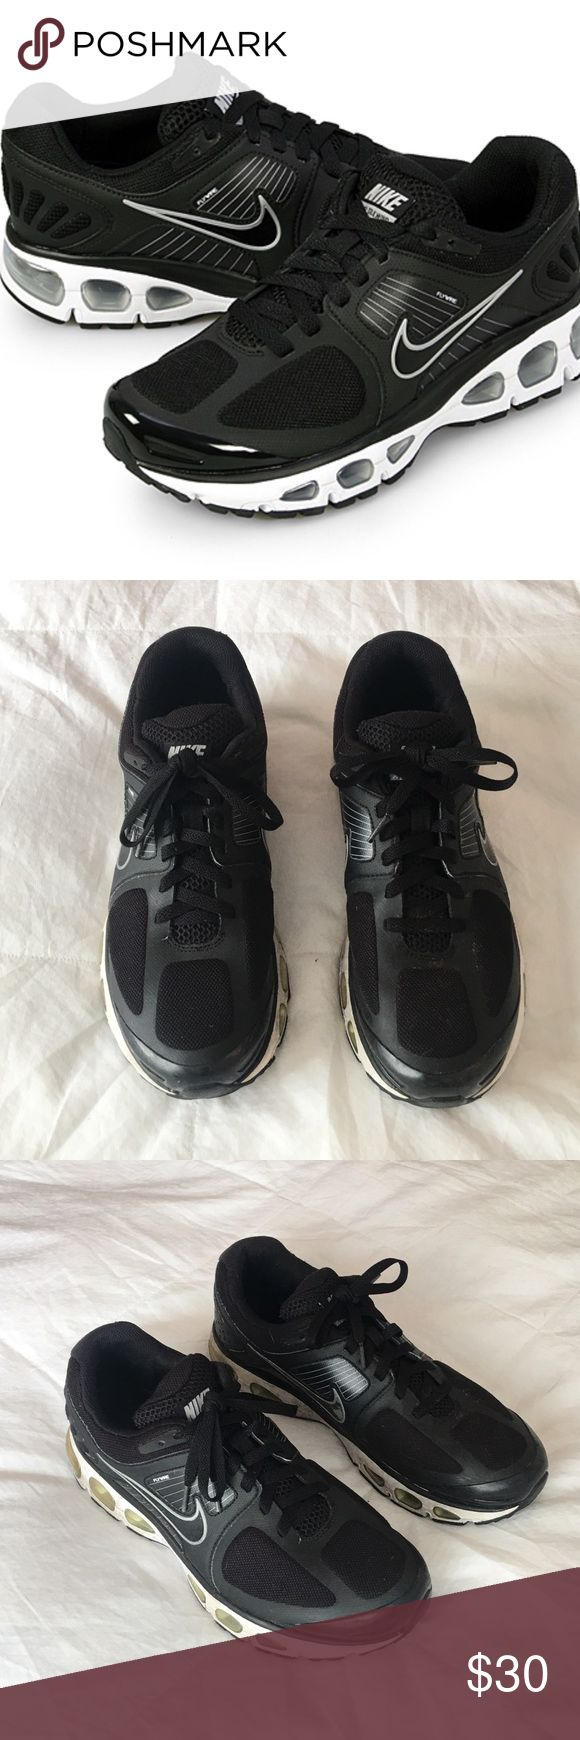 Nike Air Tailwind Running Shoes Black Size 11 Nike Air Tailwind Running Shoes. Black and White. Size 11. Slightly worn with normal wear and tear. Nike Shoes Athletic Shoes